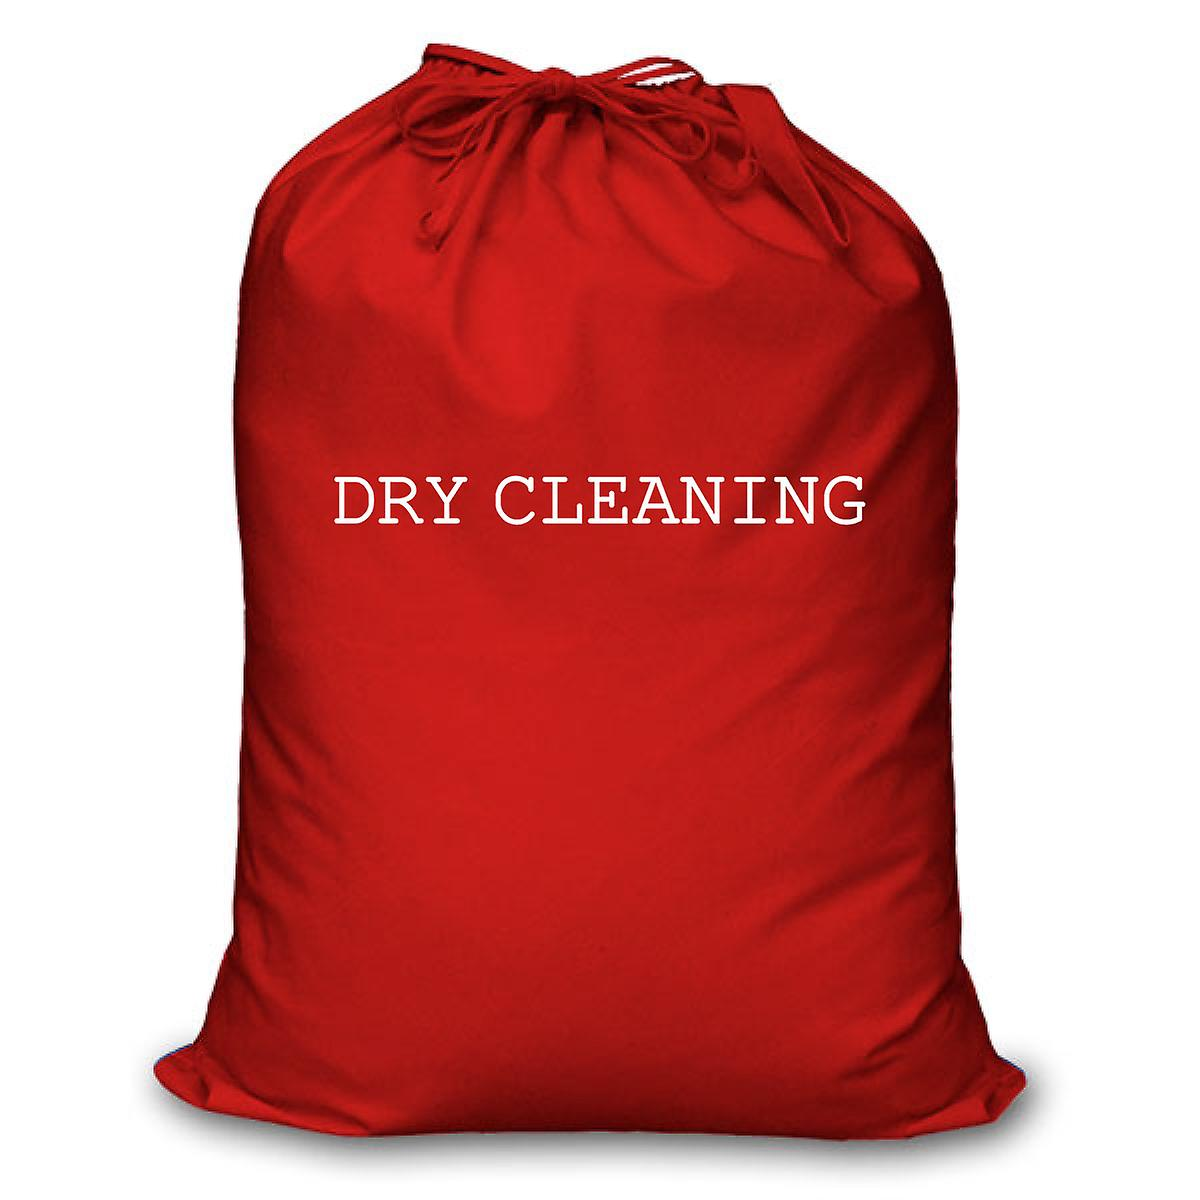 Red Laundry Bag Dry Cleaning Fruugo Uk